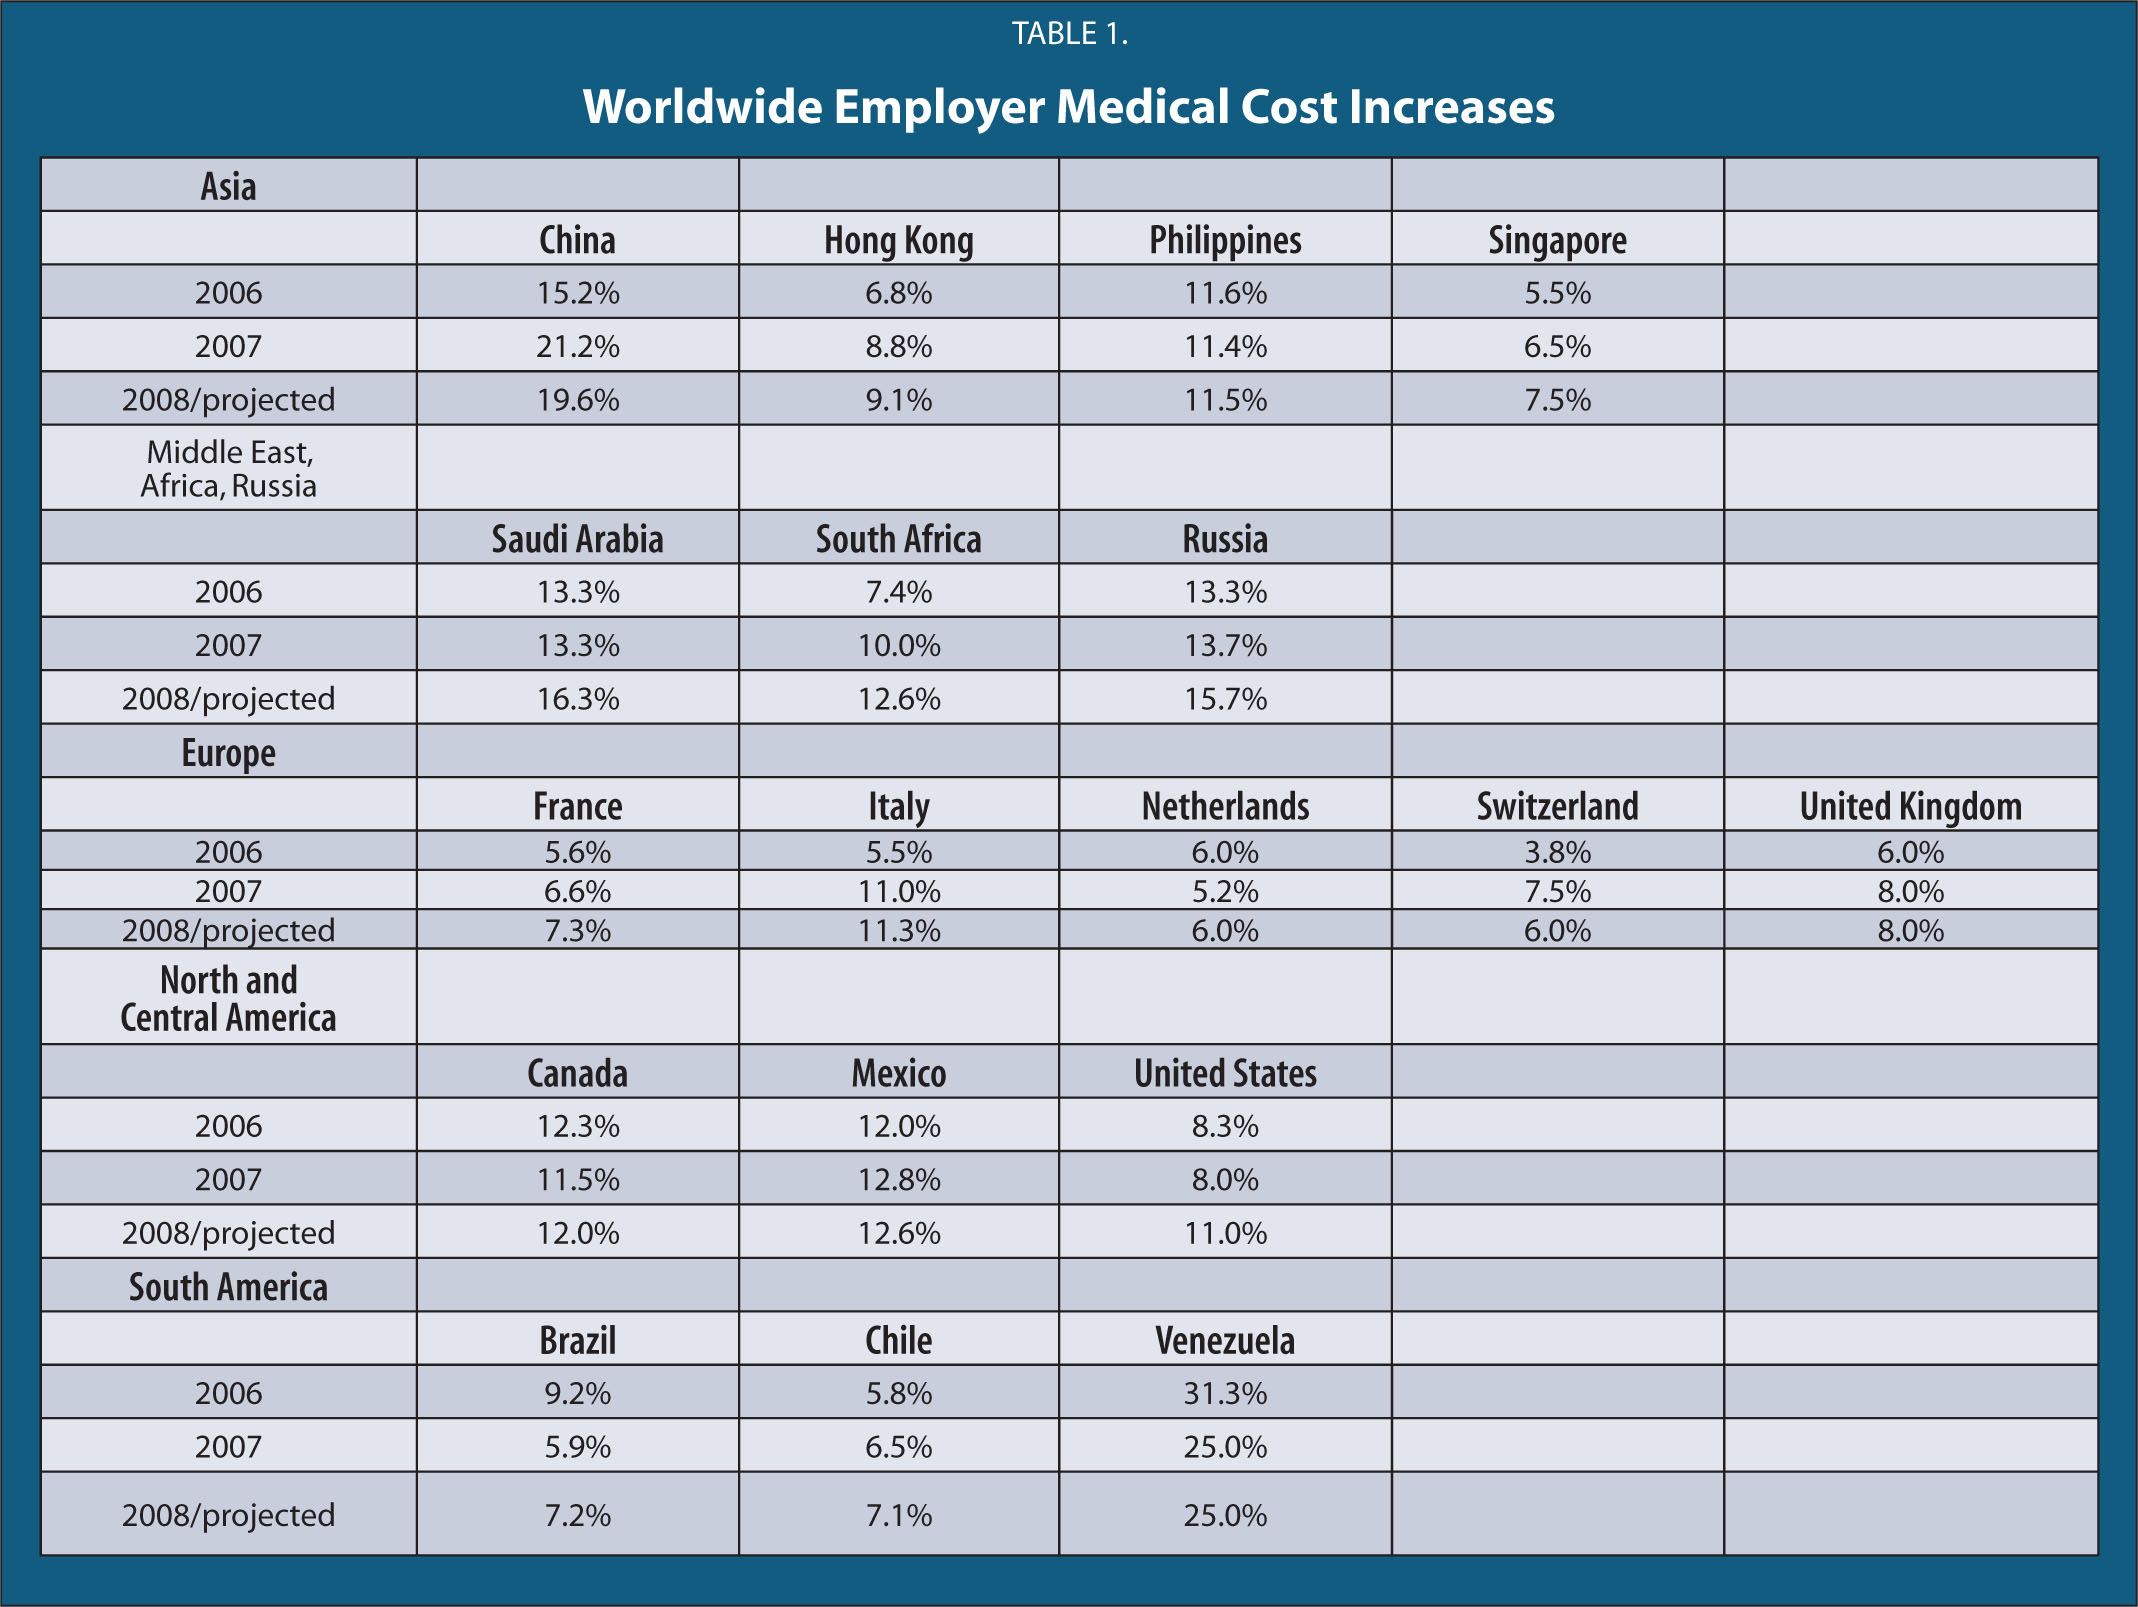 Worldwide Employer Medical Cost Increases